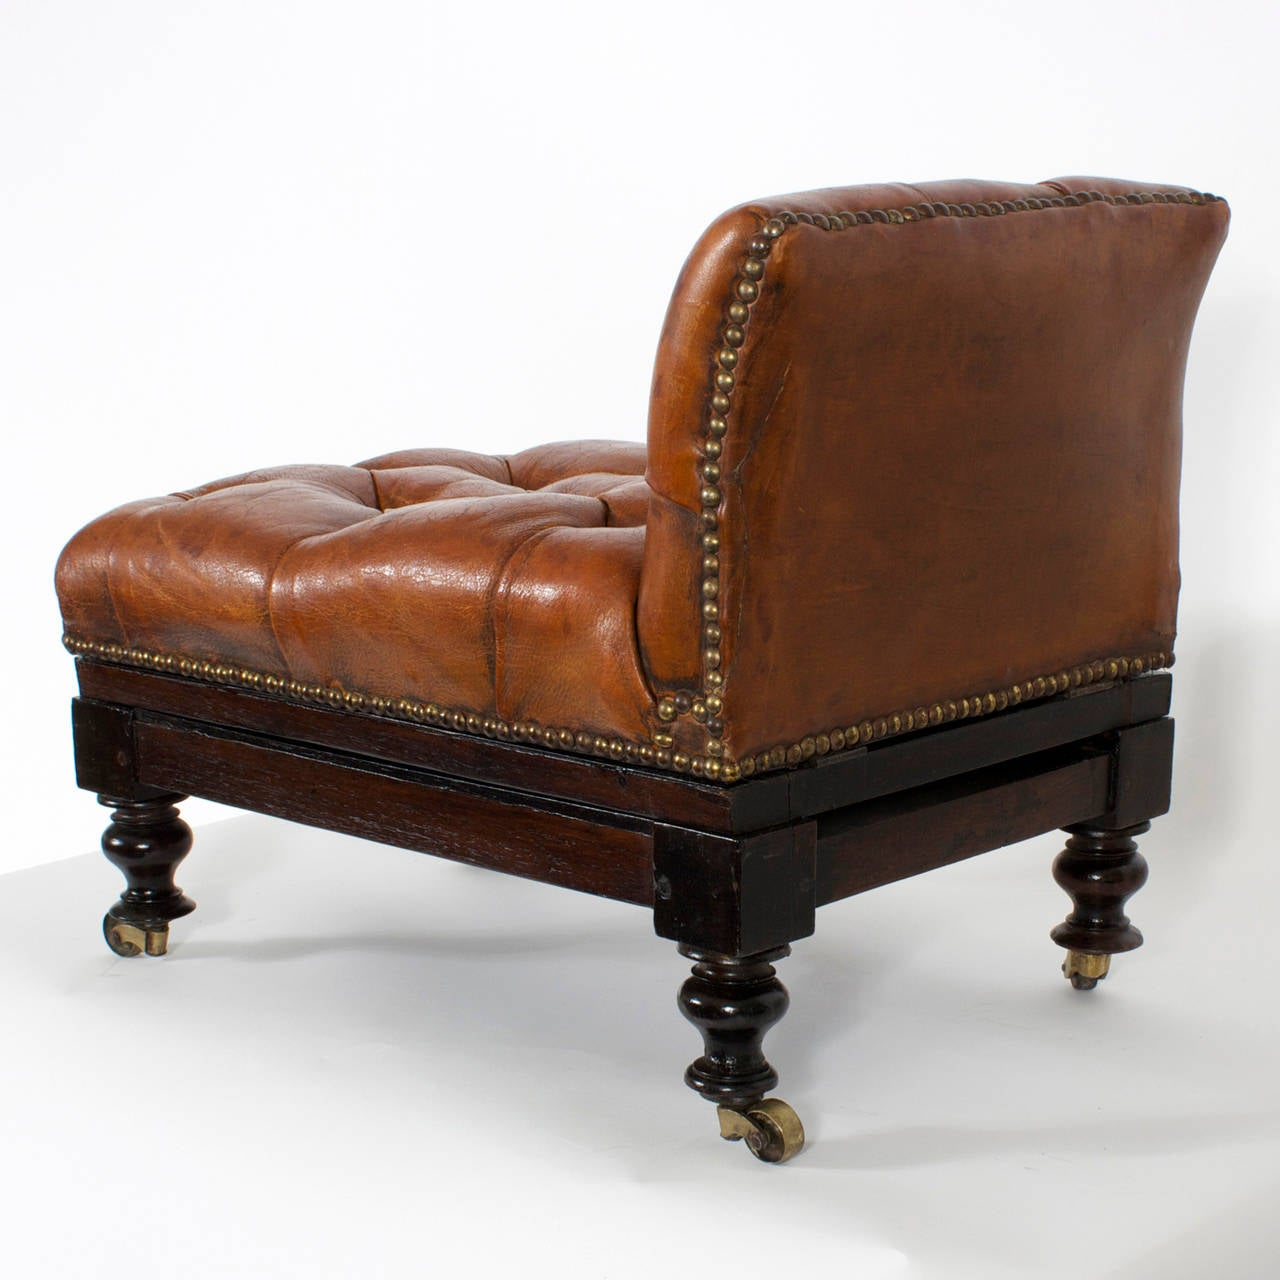 19th Century Tufted Leather Foot Stool or Bench, with Raising Capabilities In Excellent Condition For Sale In Palm Beach, FL